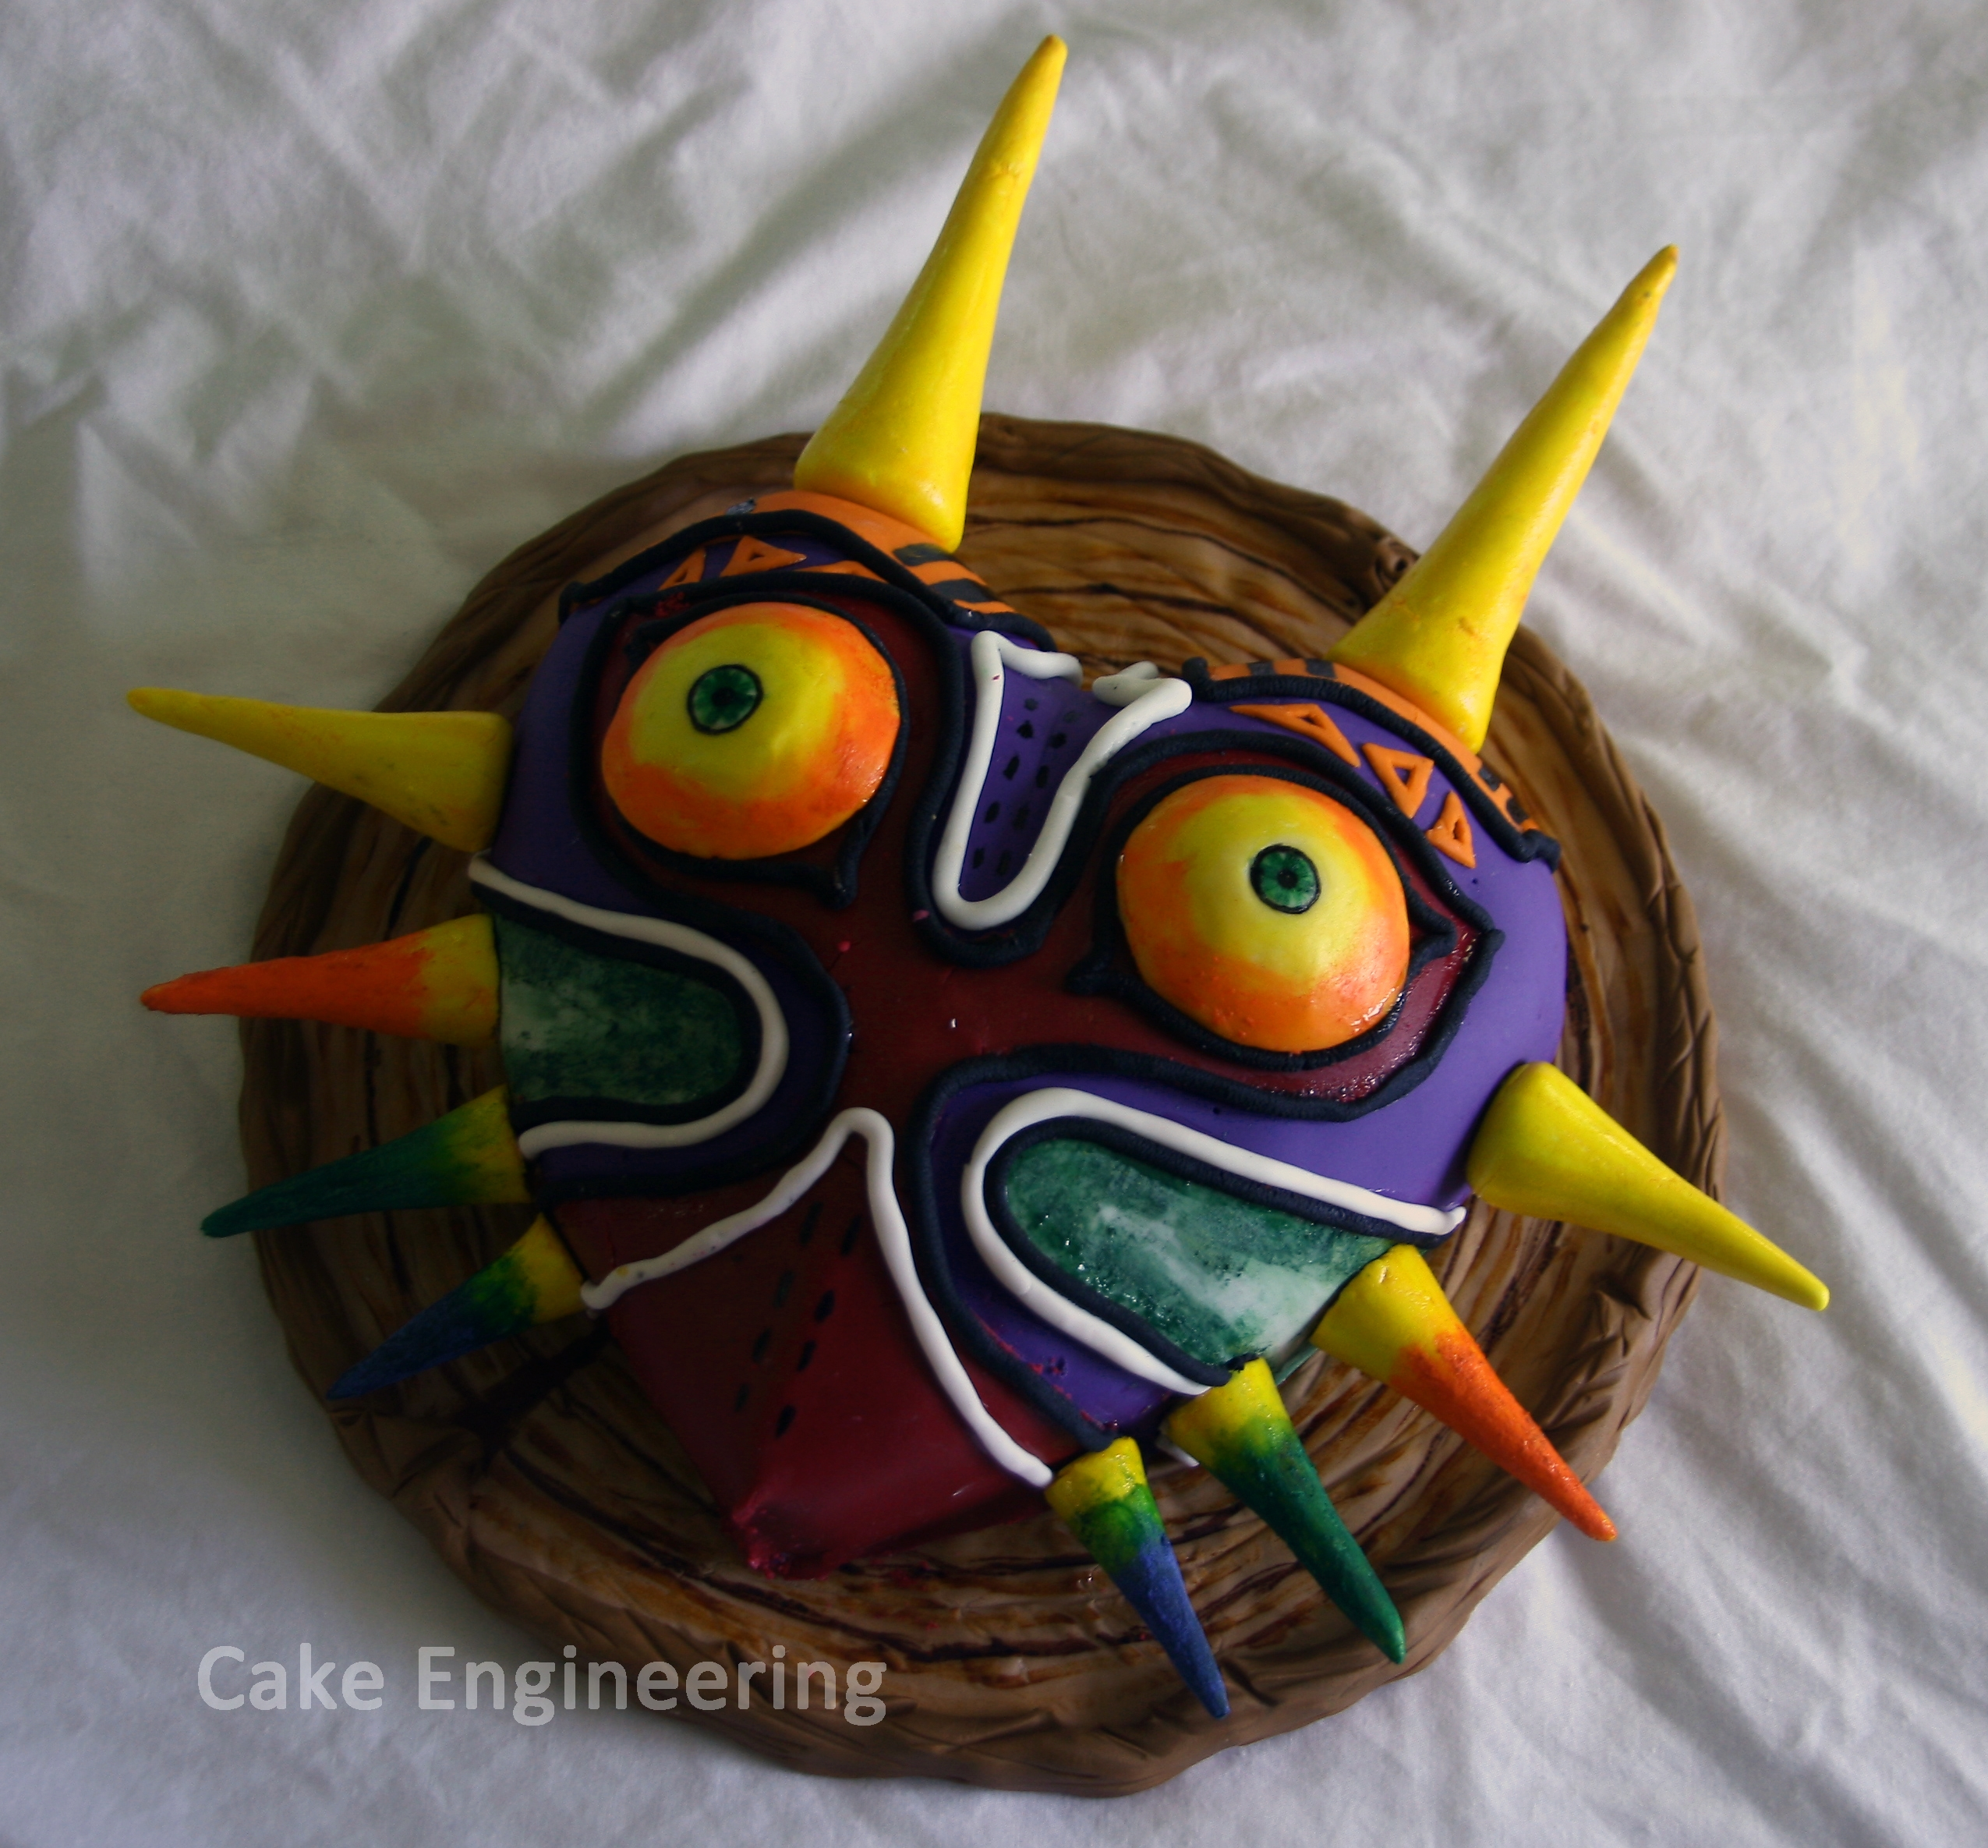 Majora's Mask Cake Red velvet cake with cream cheese frosting. Cake is based on the Majora's Mask from Legend of Zelda